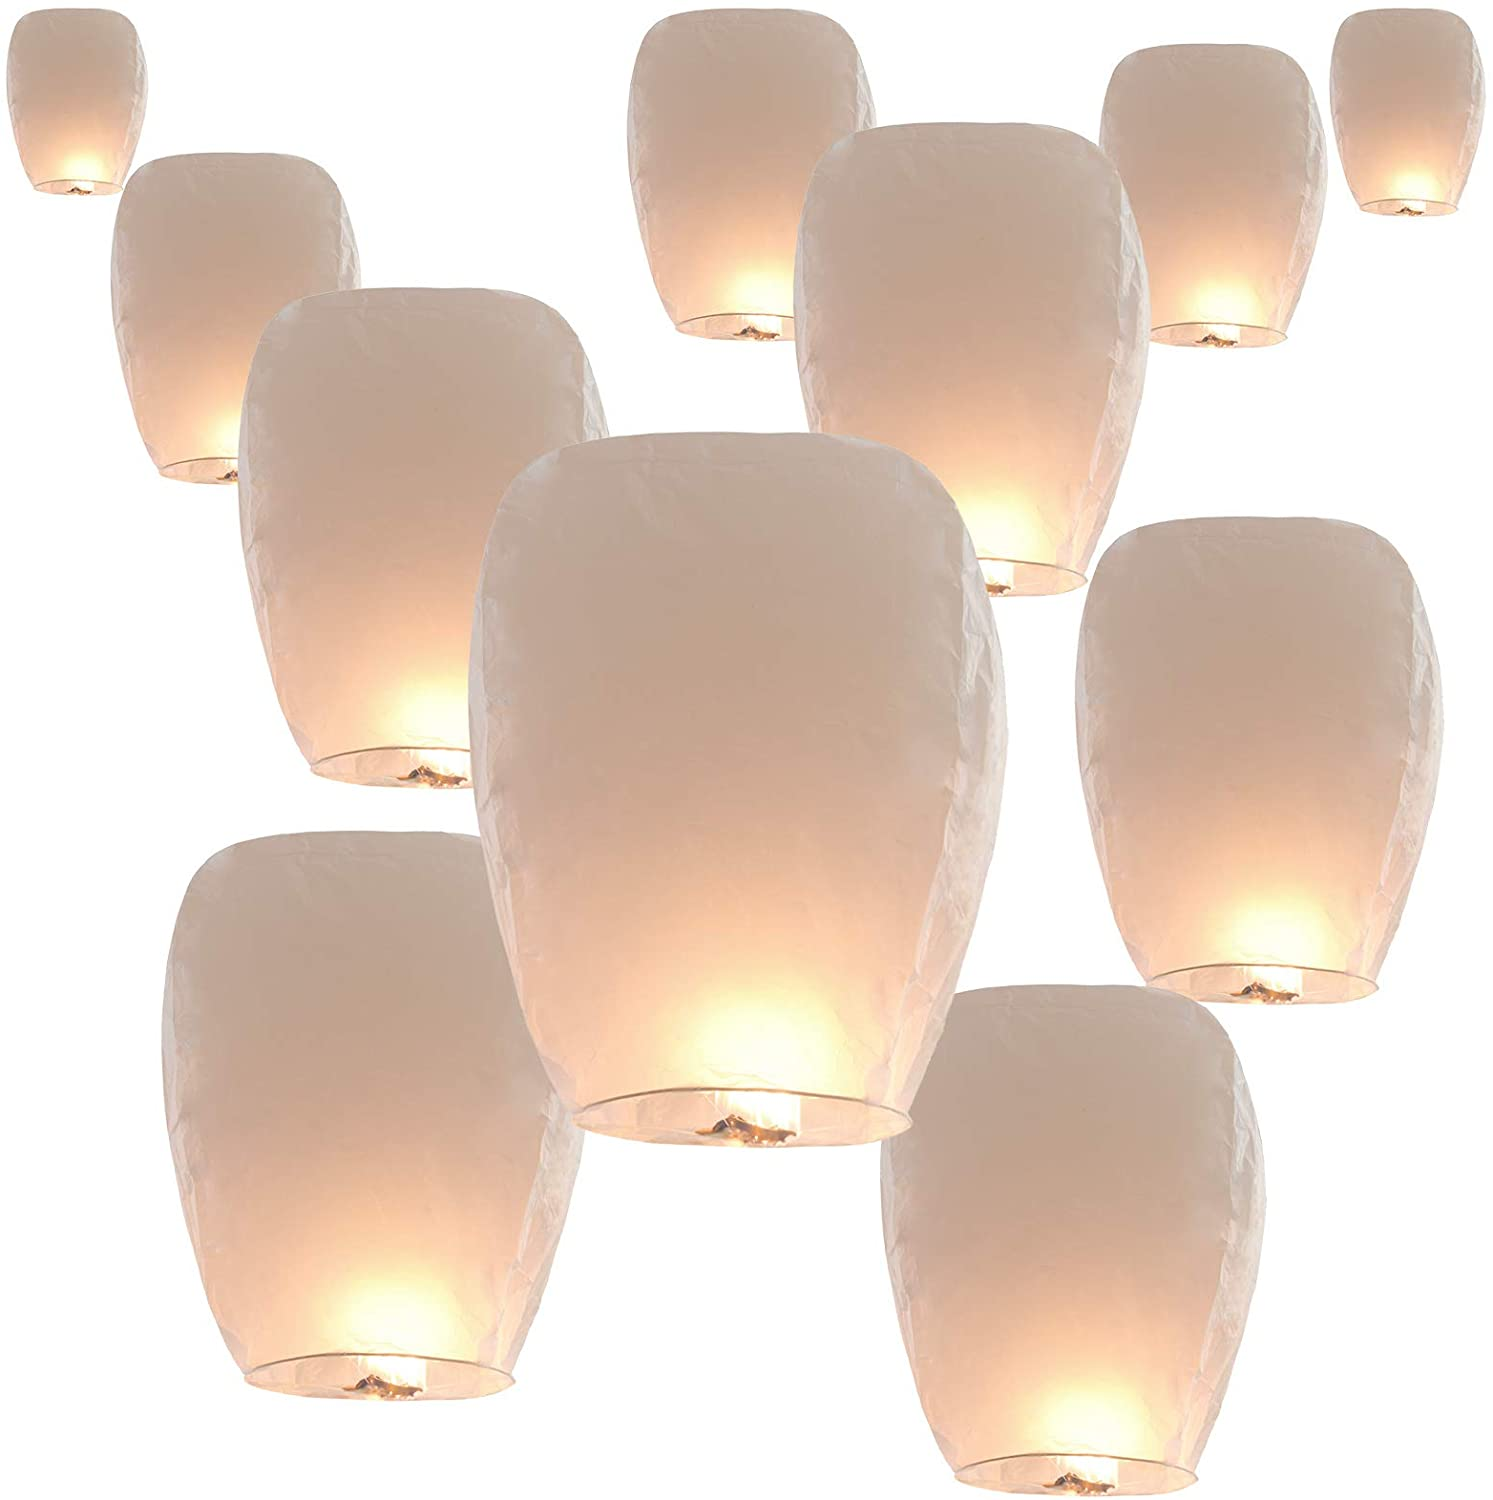 New Year Celebration and More 5 Pack Chinese Lanterns Sky Paper Lanterns 100/% Biodegradable Environmentally Friendly Wishing Lanterns for Wedding Birthday Party